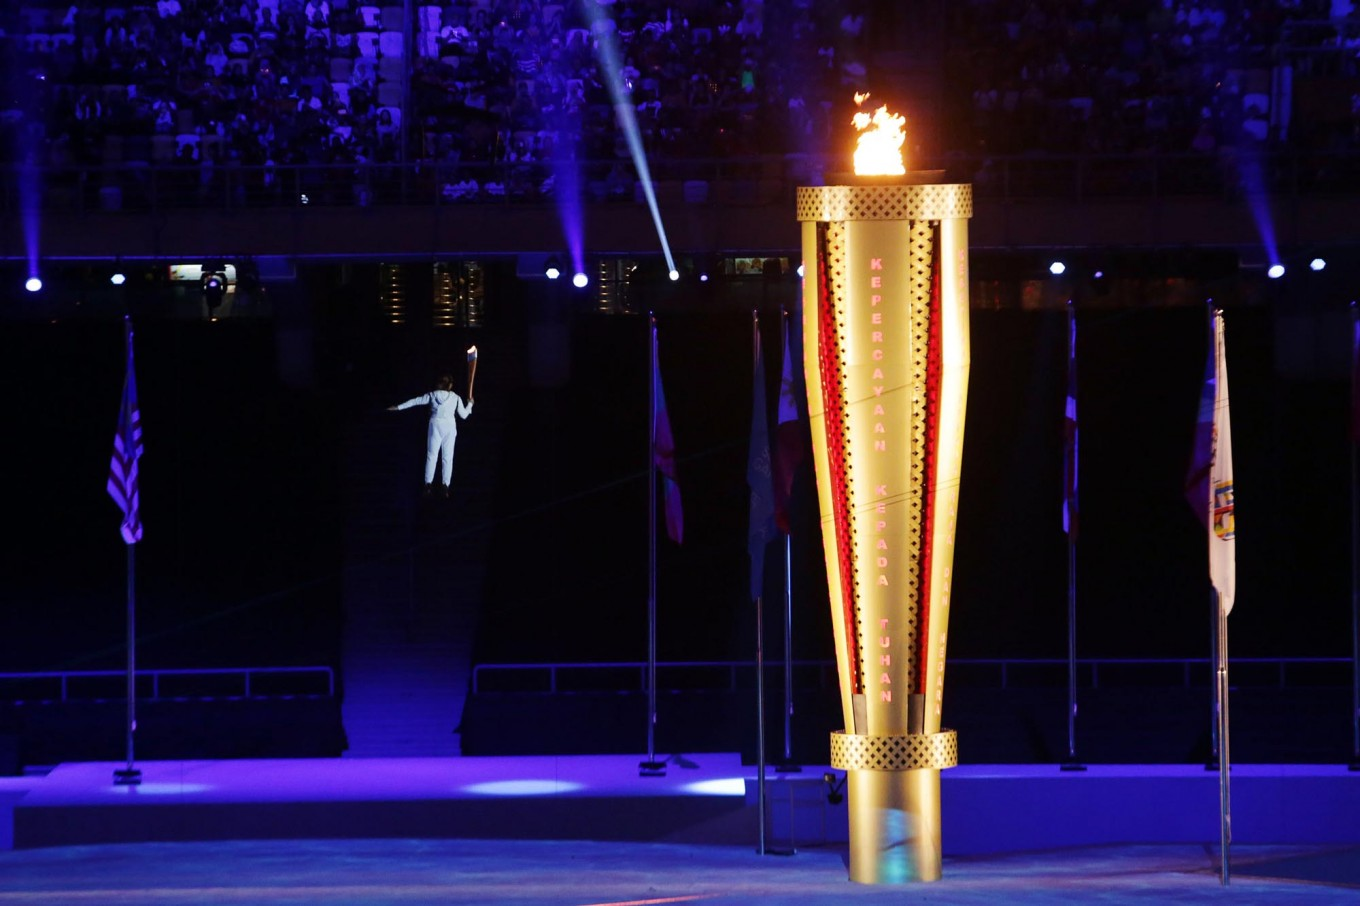 Malaysian athlete Nur Dhabitah Sabri is lifted with a wire to light the cauldron during the opening ceremony of the SEA Games. JP/Seto Wardhana